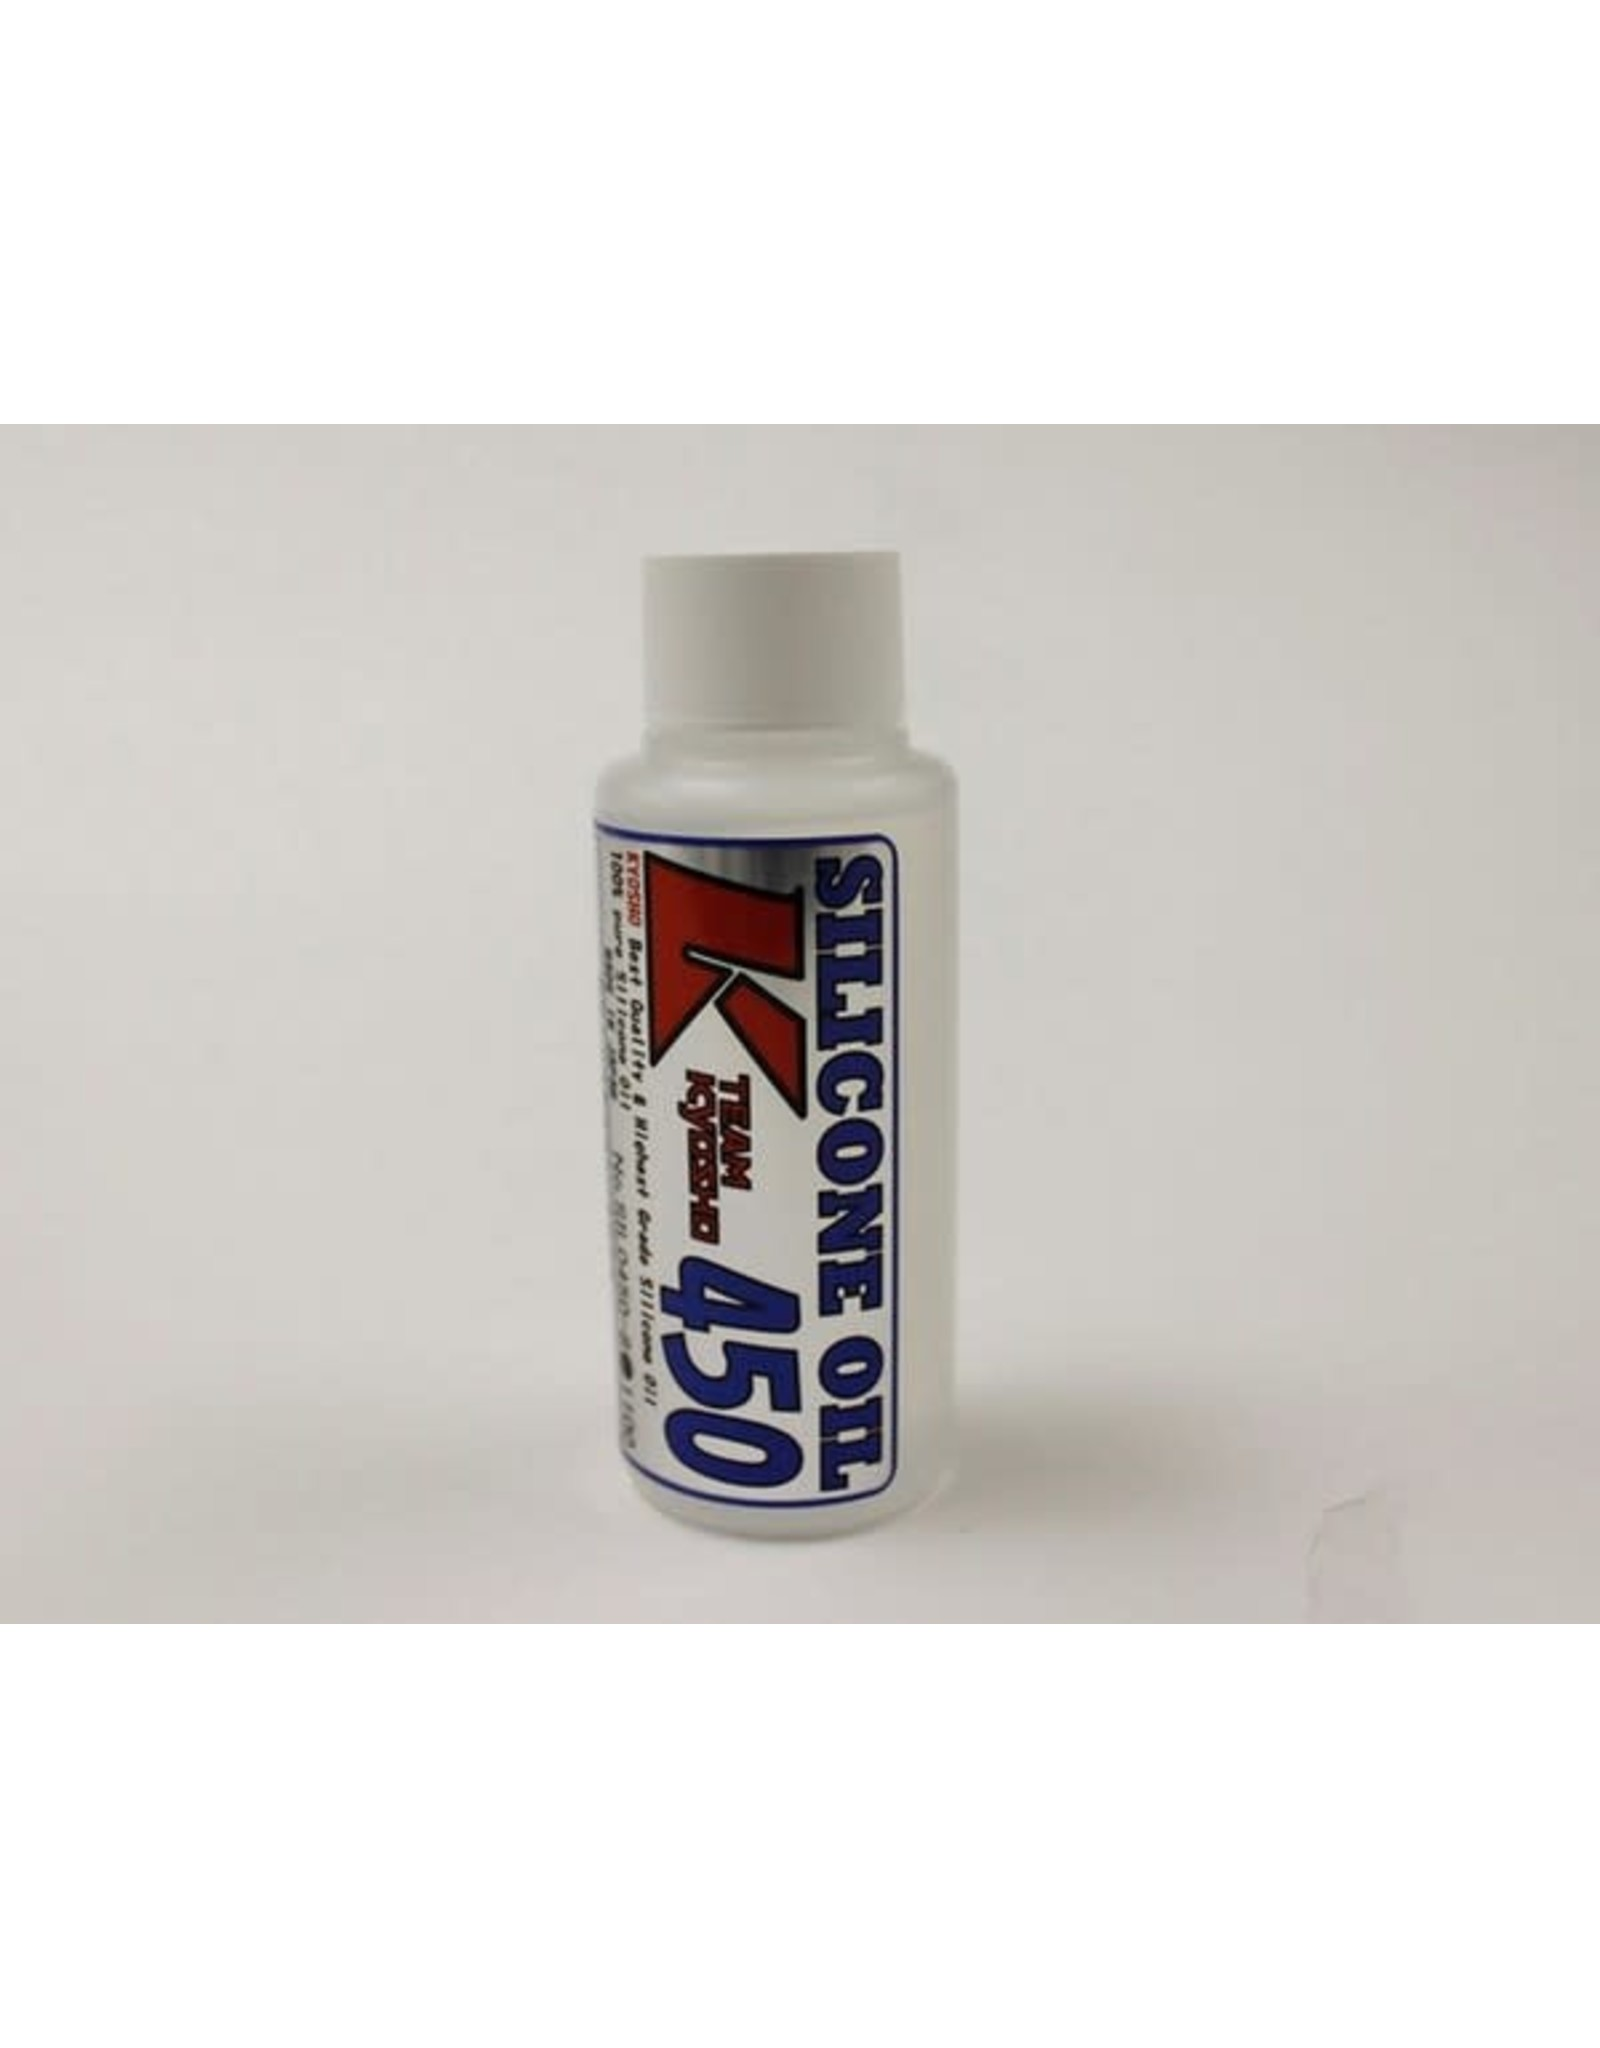 Kyosho SIL0450-8 Silicone OIL #450 (80cc)